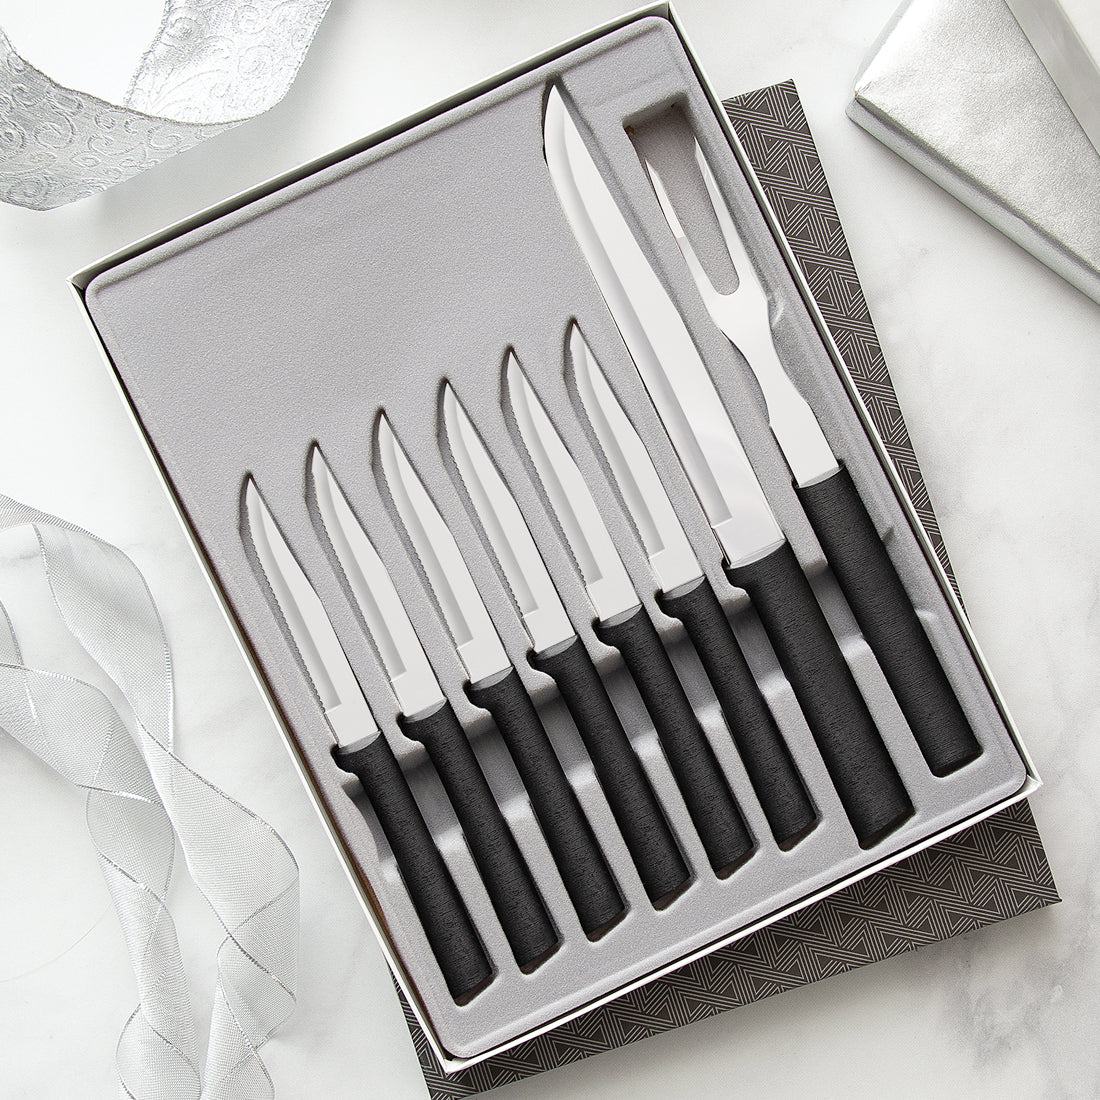 Rada Cutlery Meat Lover's Set with silver handles in black-lined gift box